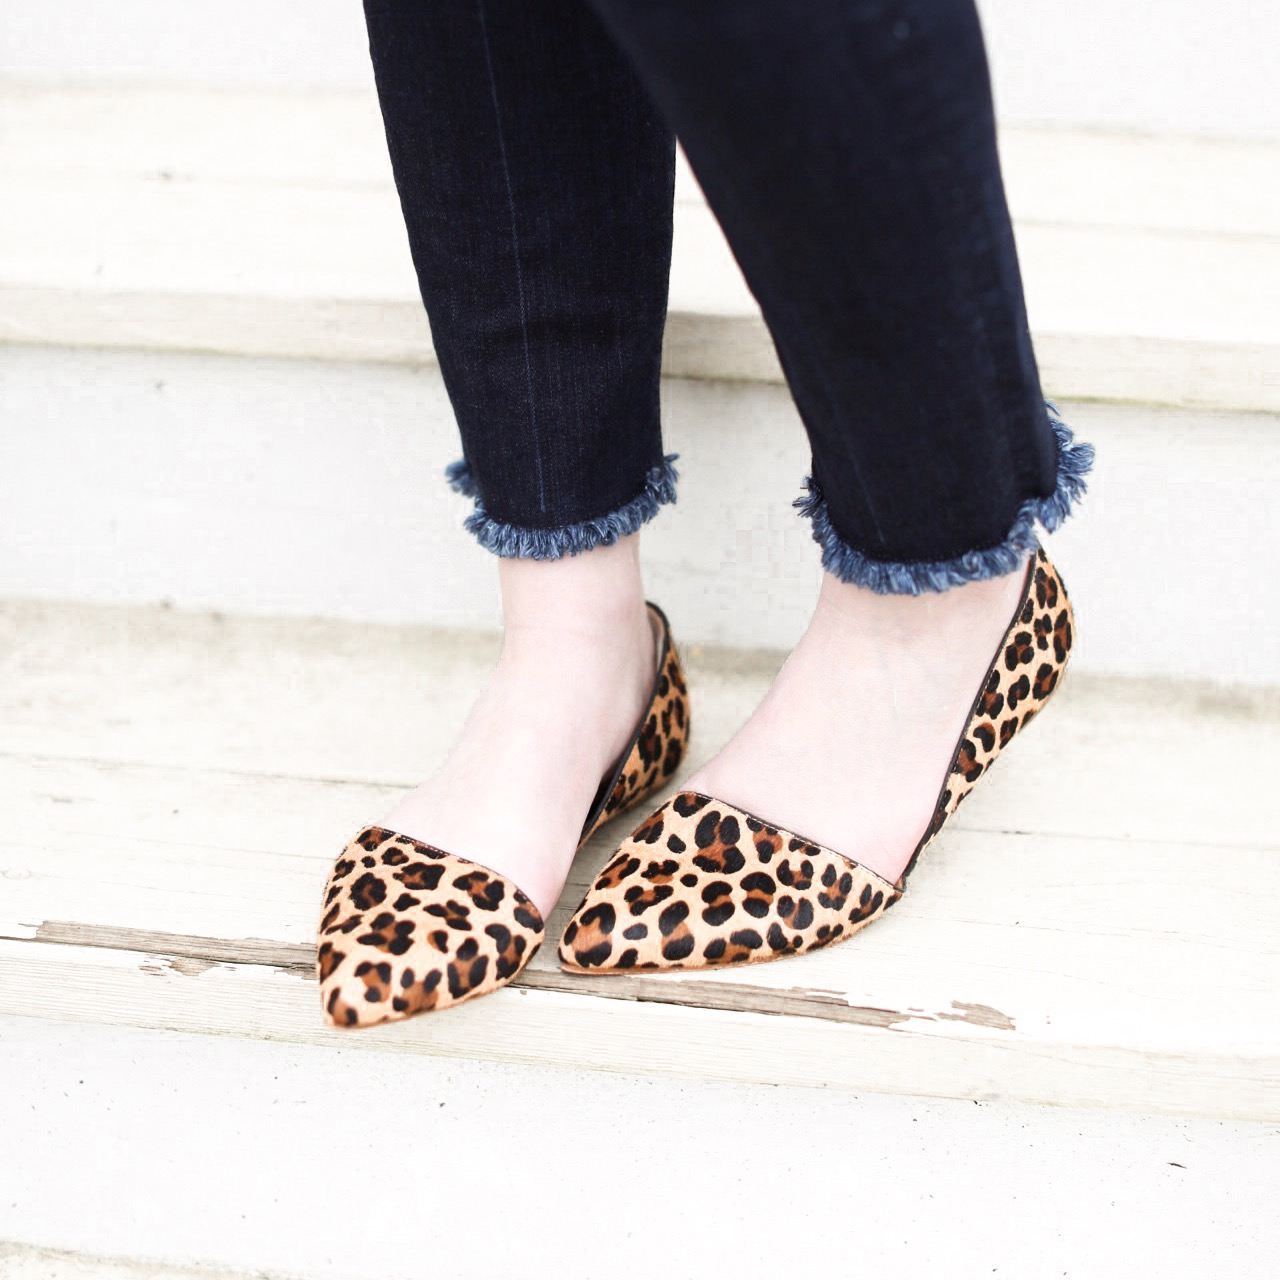 Leopard Flats - I've been searching for the best leopard flats that I could find for about a month now… Each one I came across was too expensive, not my style, not quality enough, or even a strange color… But then, I came across these!! You all know I'm a little J Crew obsessed, so no surprise here that these came from the Factory! Their quality is fantastic, and the price isn't bad either!! The color is perfect, and they are a perfectly classy design! And trust me when I say that these are the best combo of all my requirements that I've found thus far!! However, we gotta talk about J Crew shoe sizing…. J Crew shoes are a bit narrow, so PLEASE NOTE - I always size UP to an 8 (from 7.5) for the width, and then add heel cushions in the heels so they don't slip! And, in my opinion, heel cushions always make shoes comfier anyway ;) I've linked my absolute favy heel cushions HERE! You will love these shoes, I promise!!